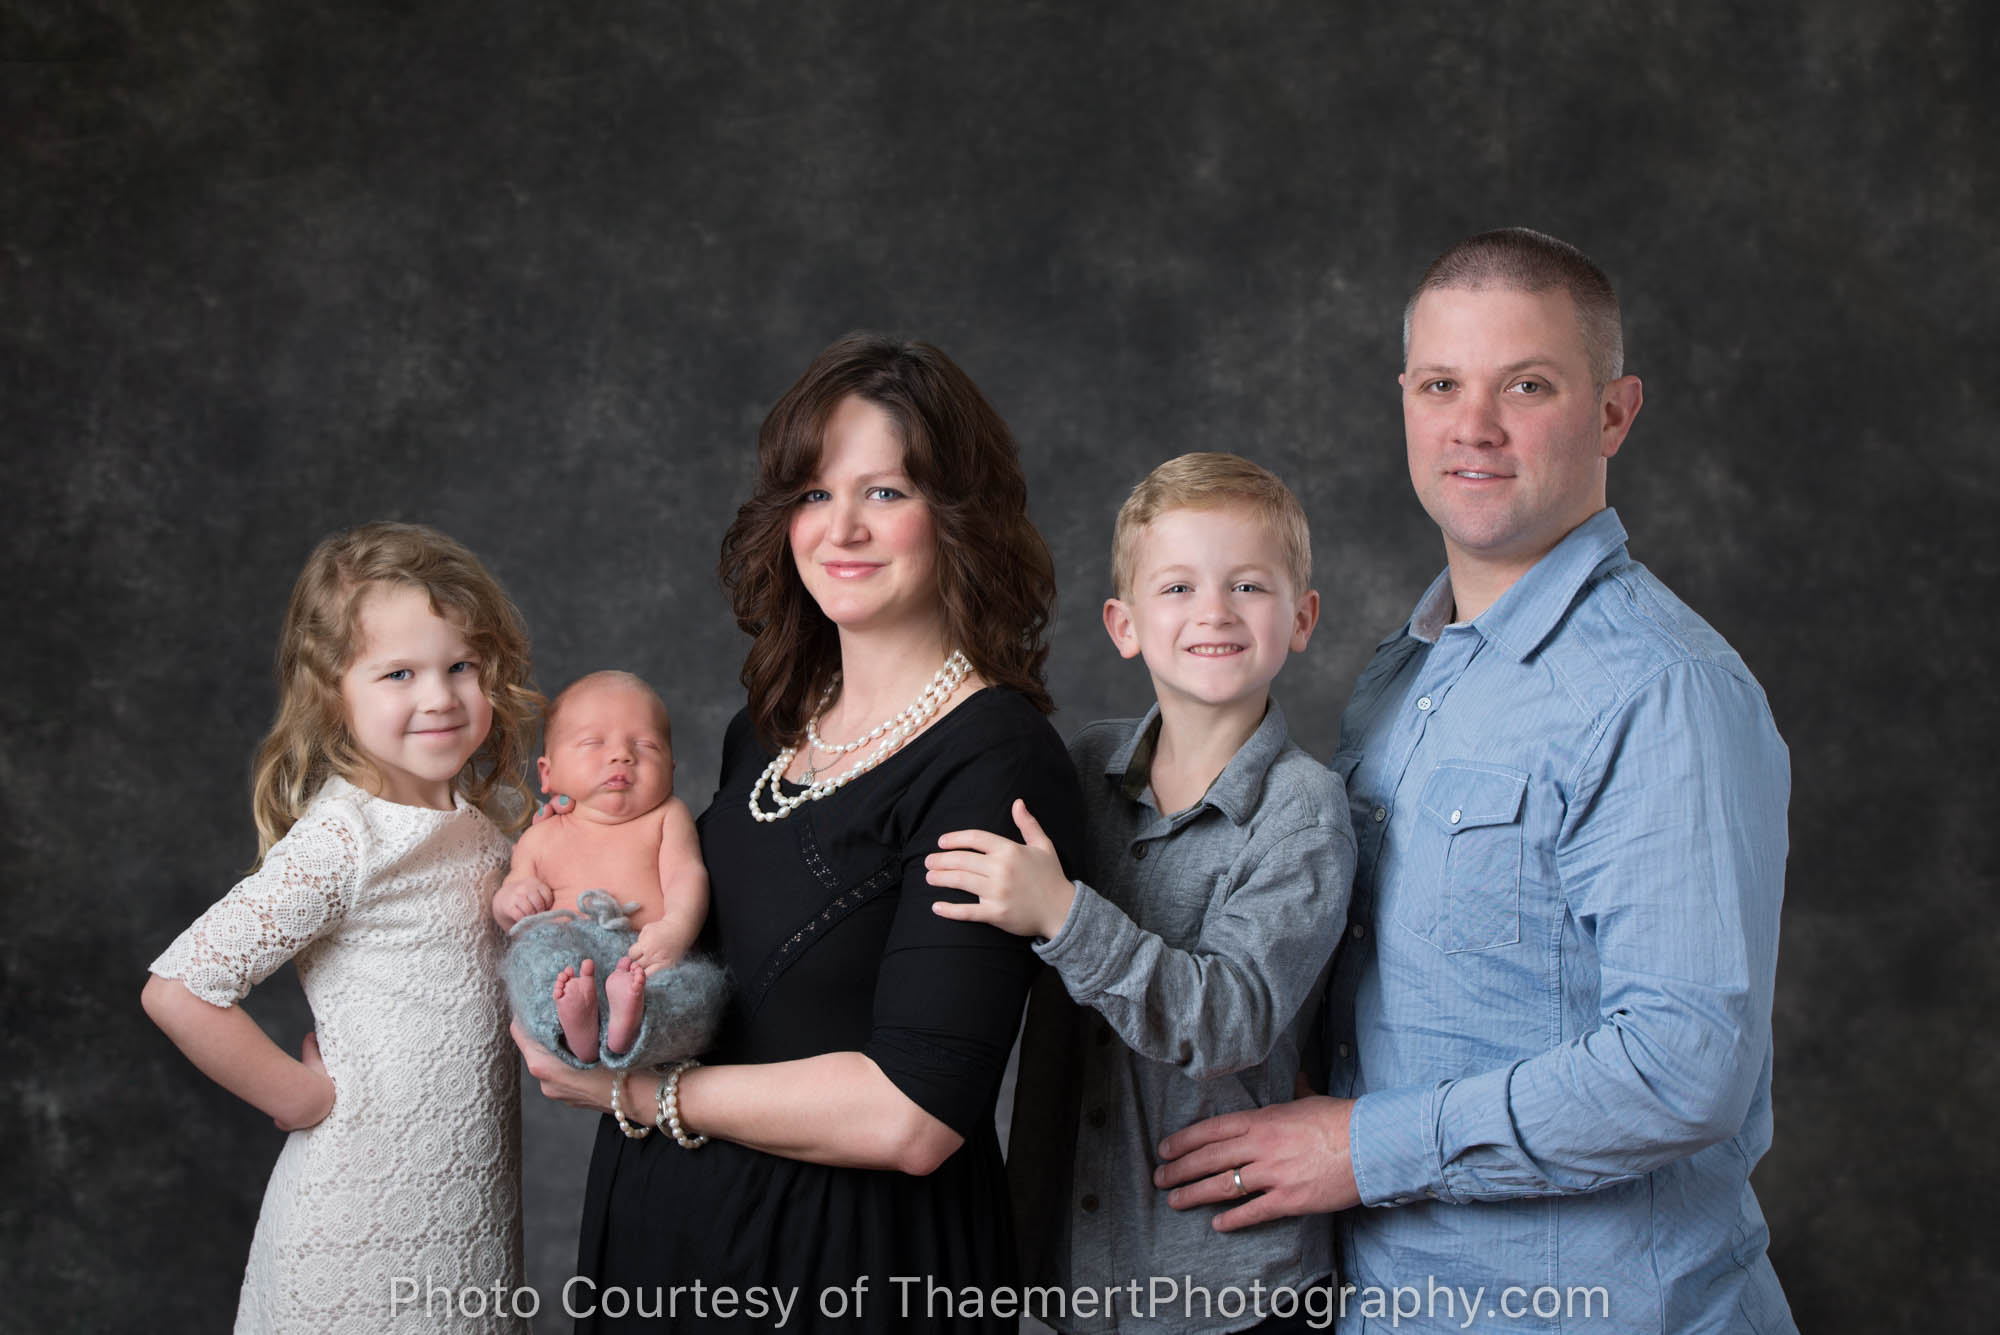 Beautiful family heritage portrait in the studio with newborn baby boy